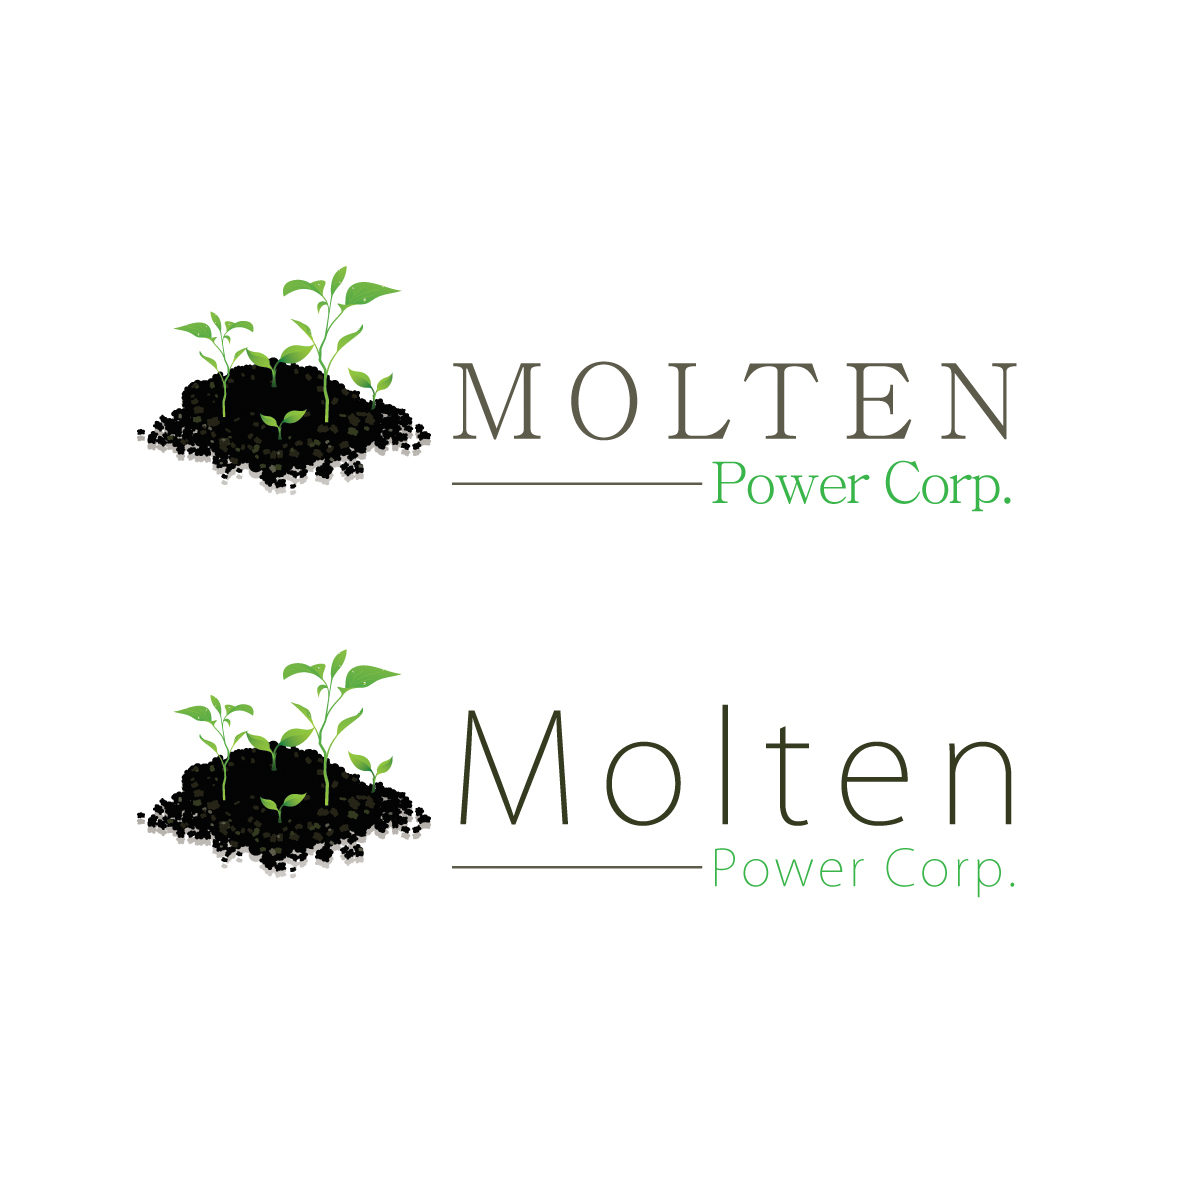 Logo Design by ex - Entry No. 47 in the Logo Design Contest Molten Power Corp..